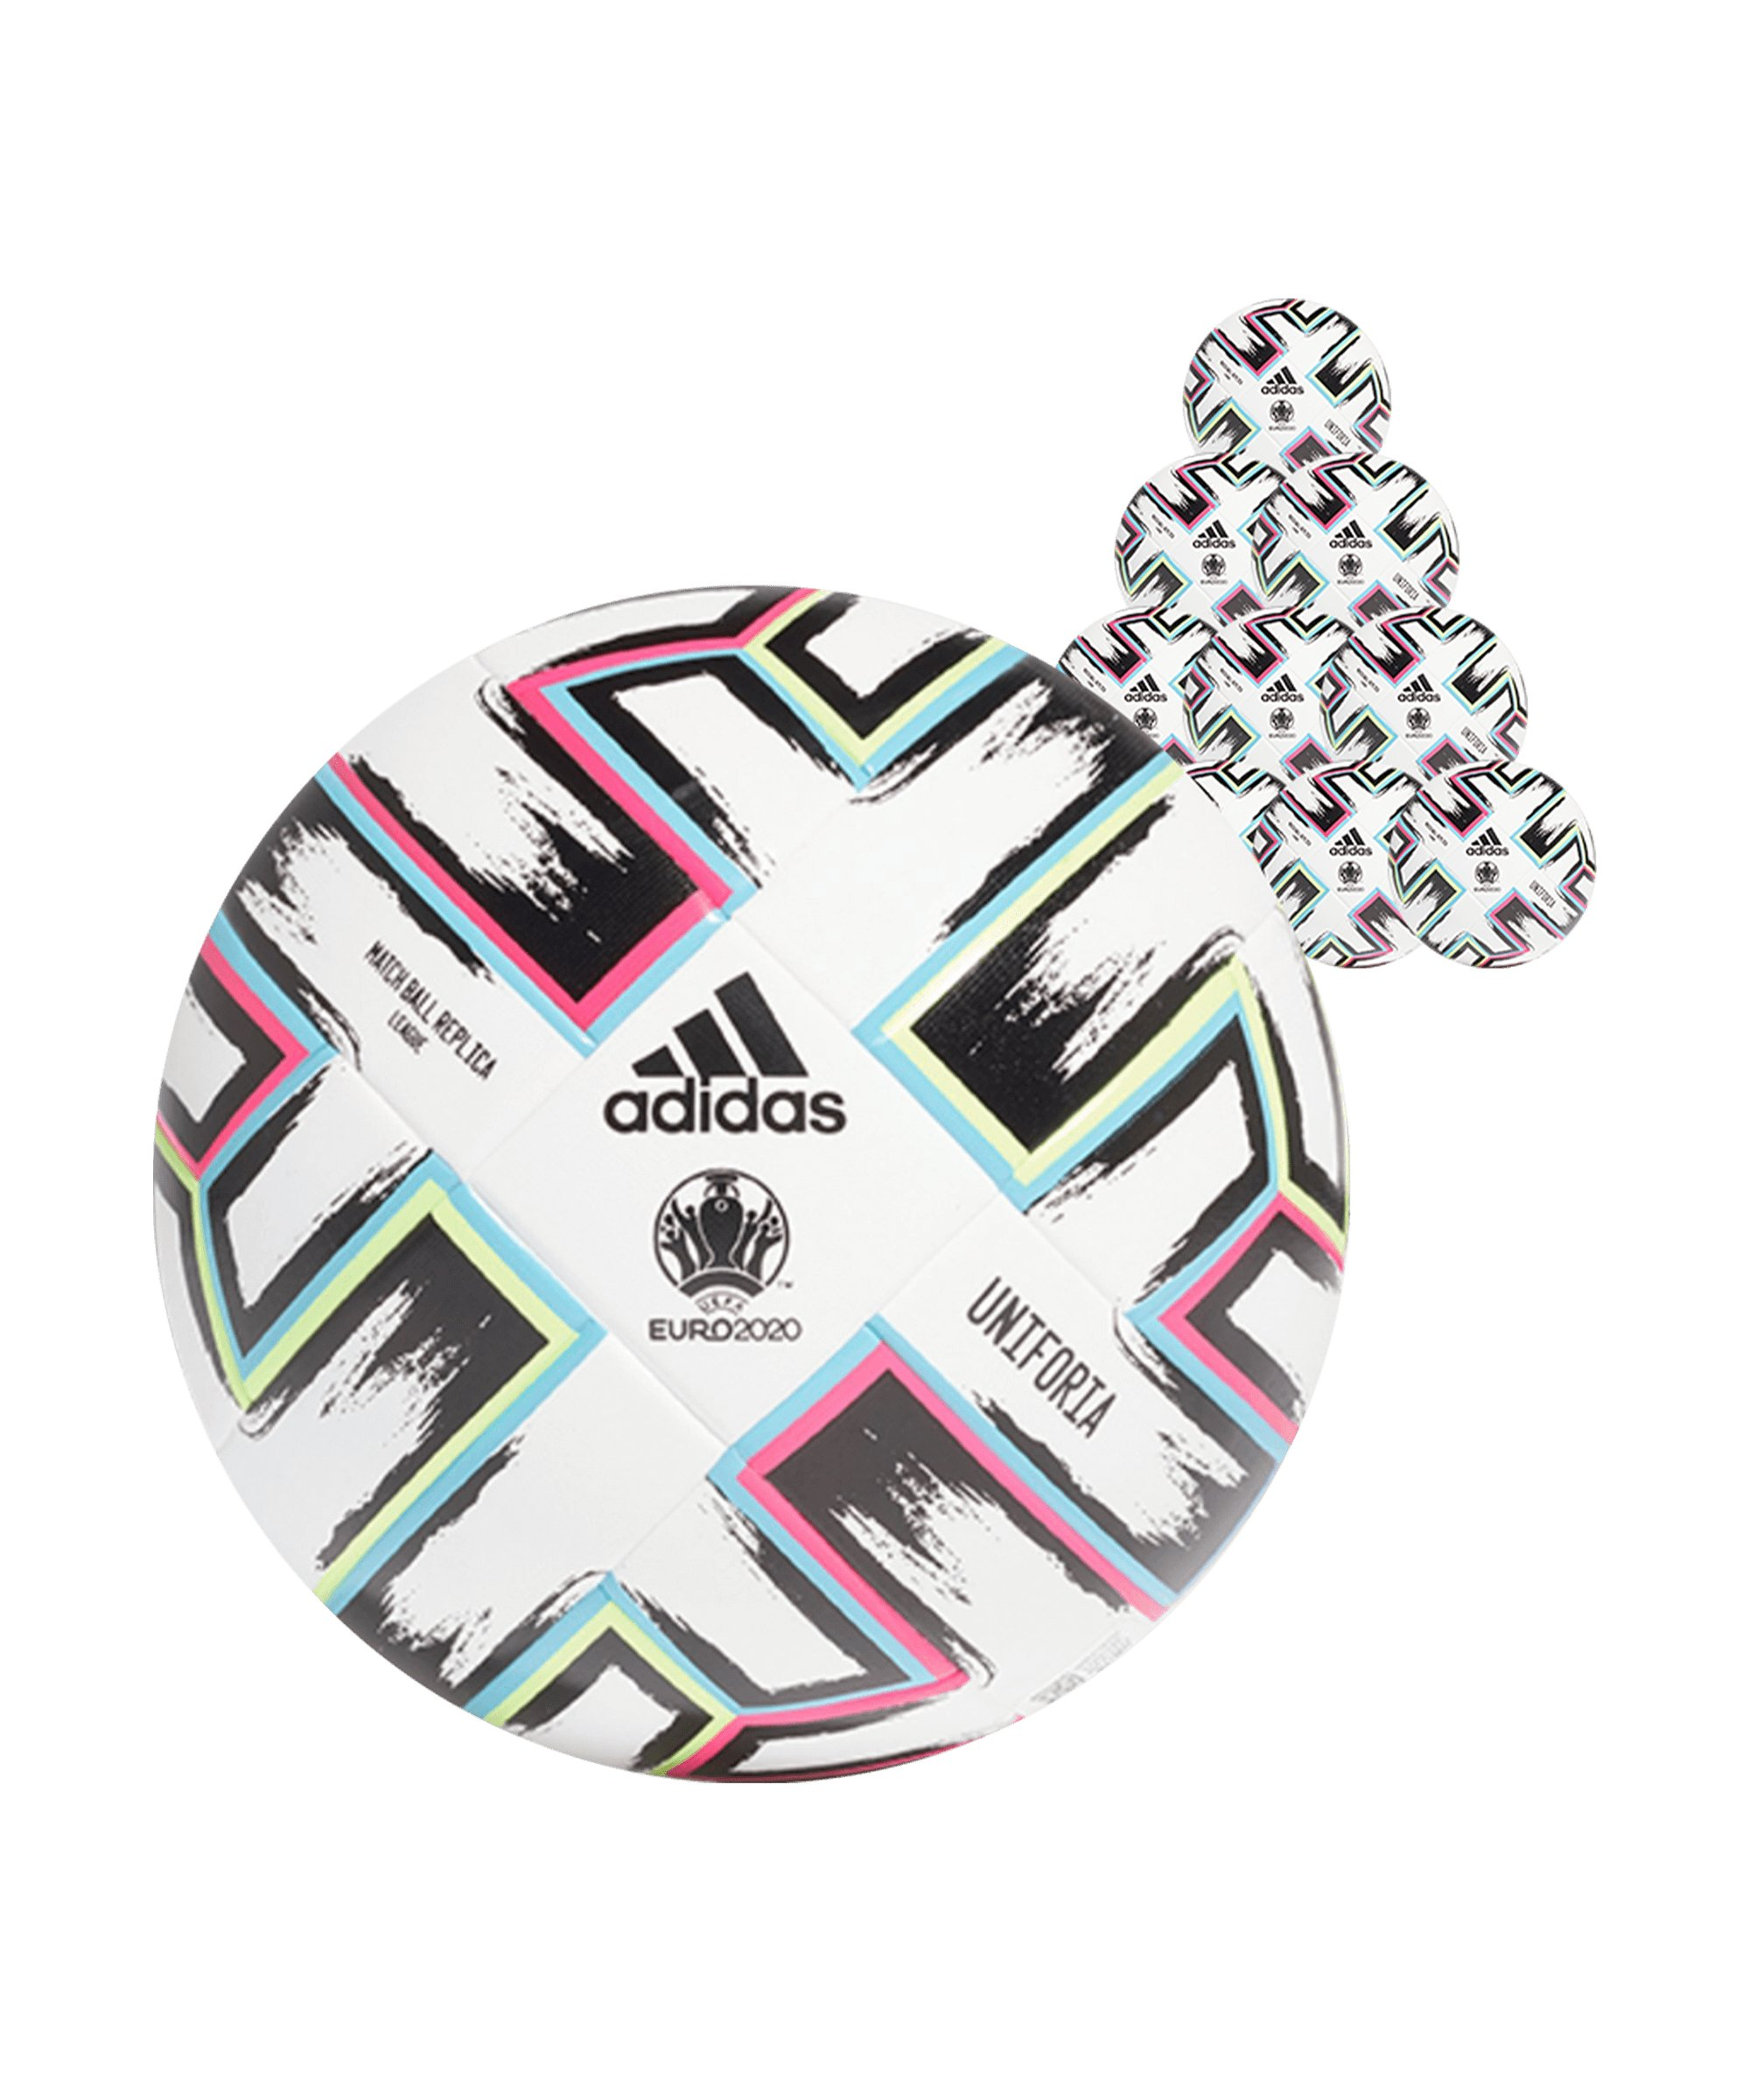 adidas LGE Uniforia Trainingsball 10x Gr. 5 Weiss - weiss